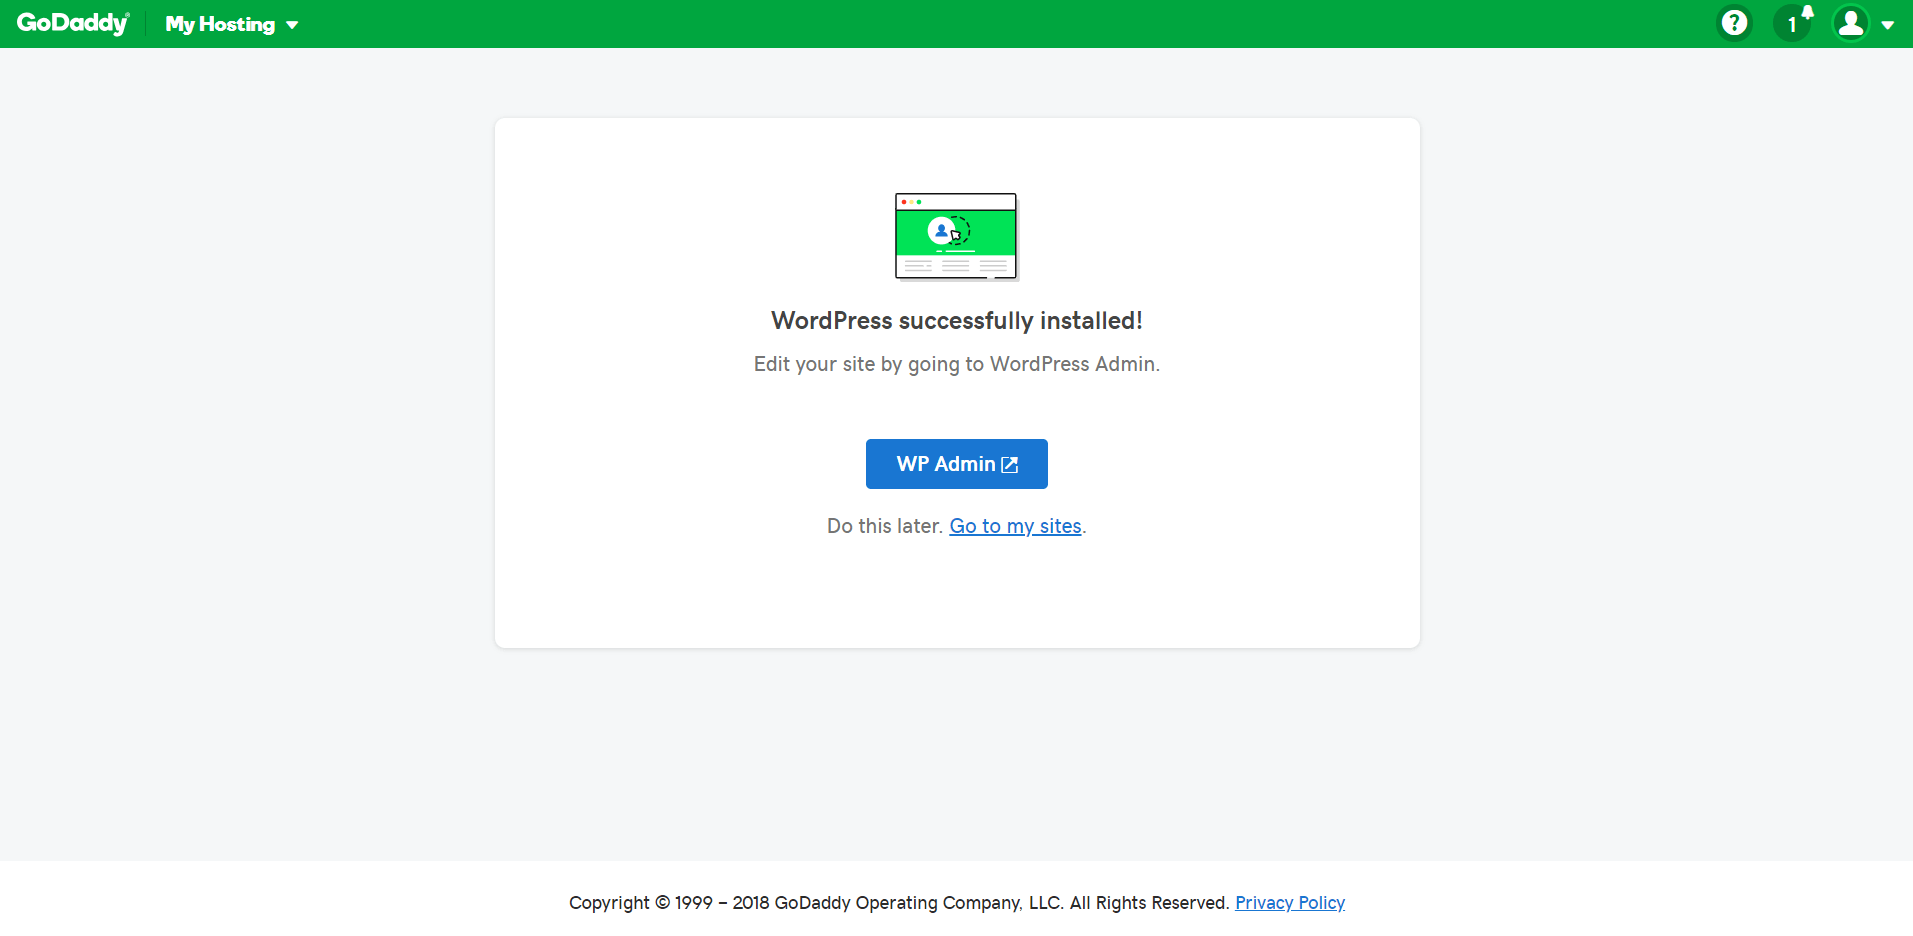 How to Connect a Domain and Install WordPress on GoDaddy-image4